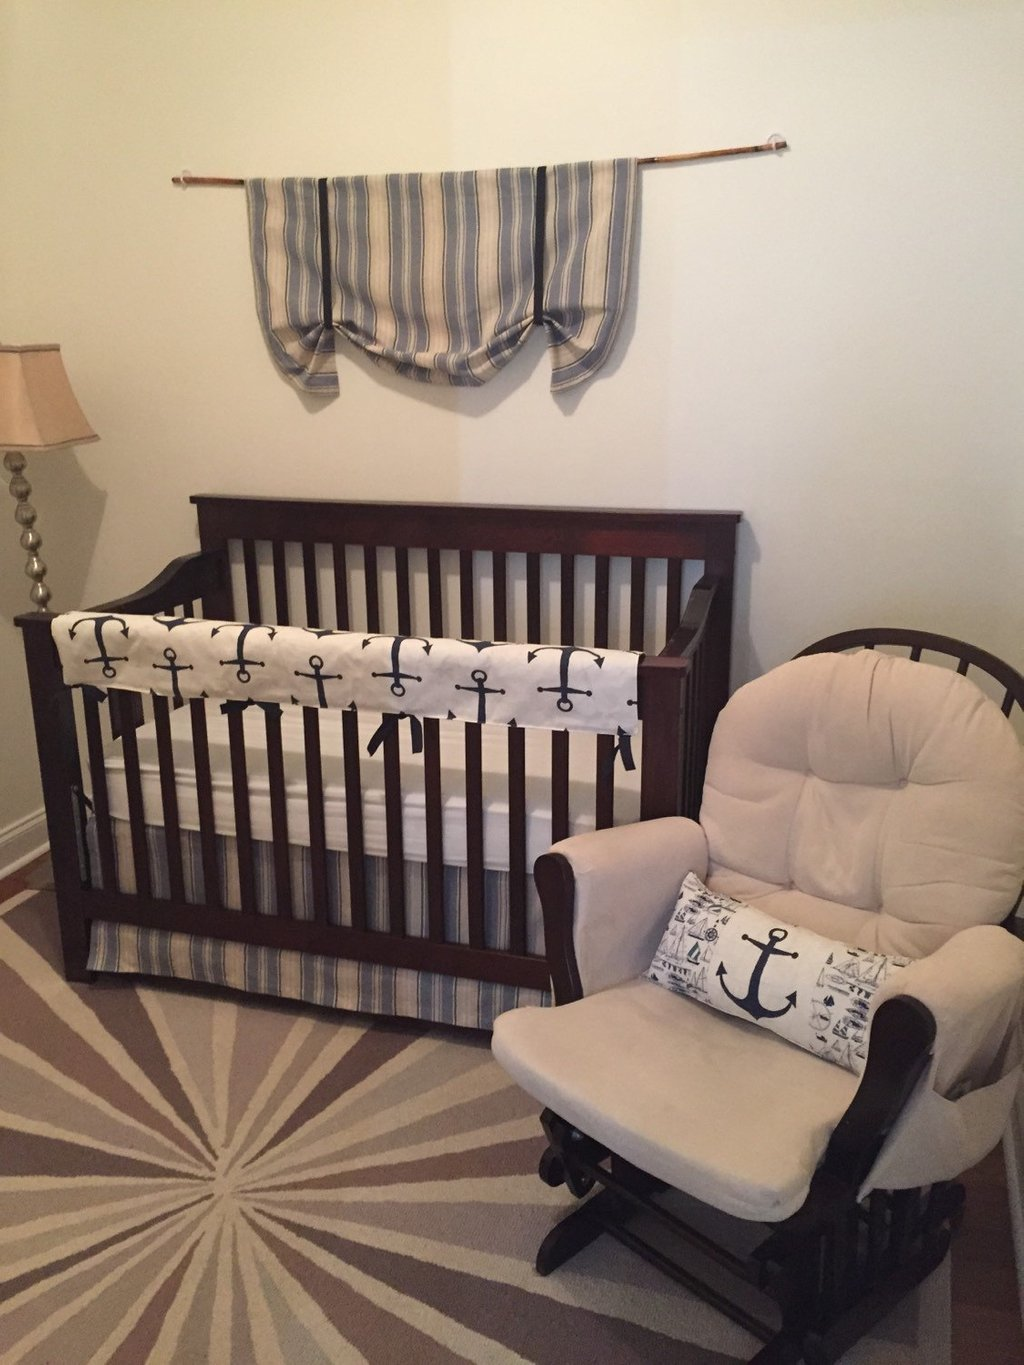 Image of: Boat Baby Bedding Anchor Baby Bedding Crib Set Nautical Nursery Bedding Ideas